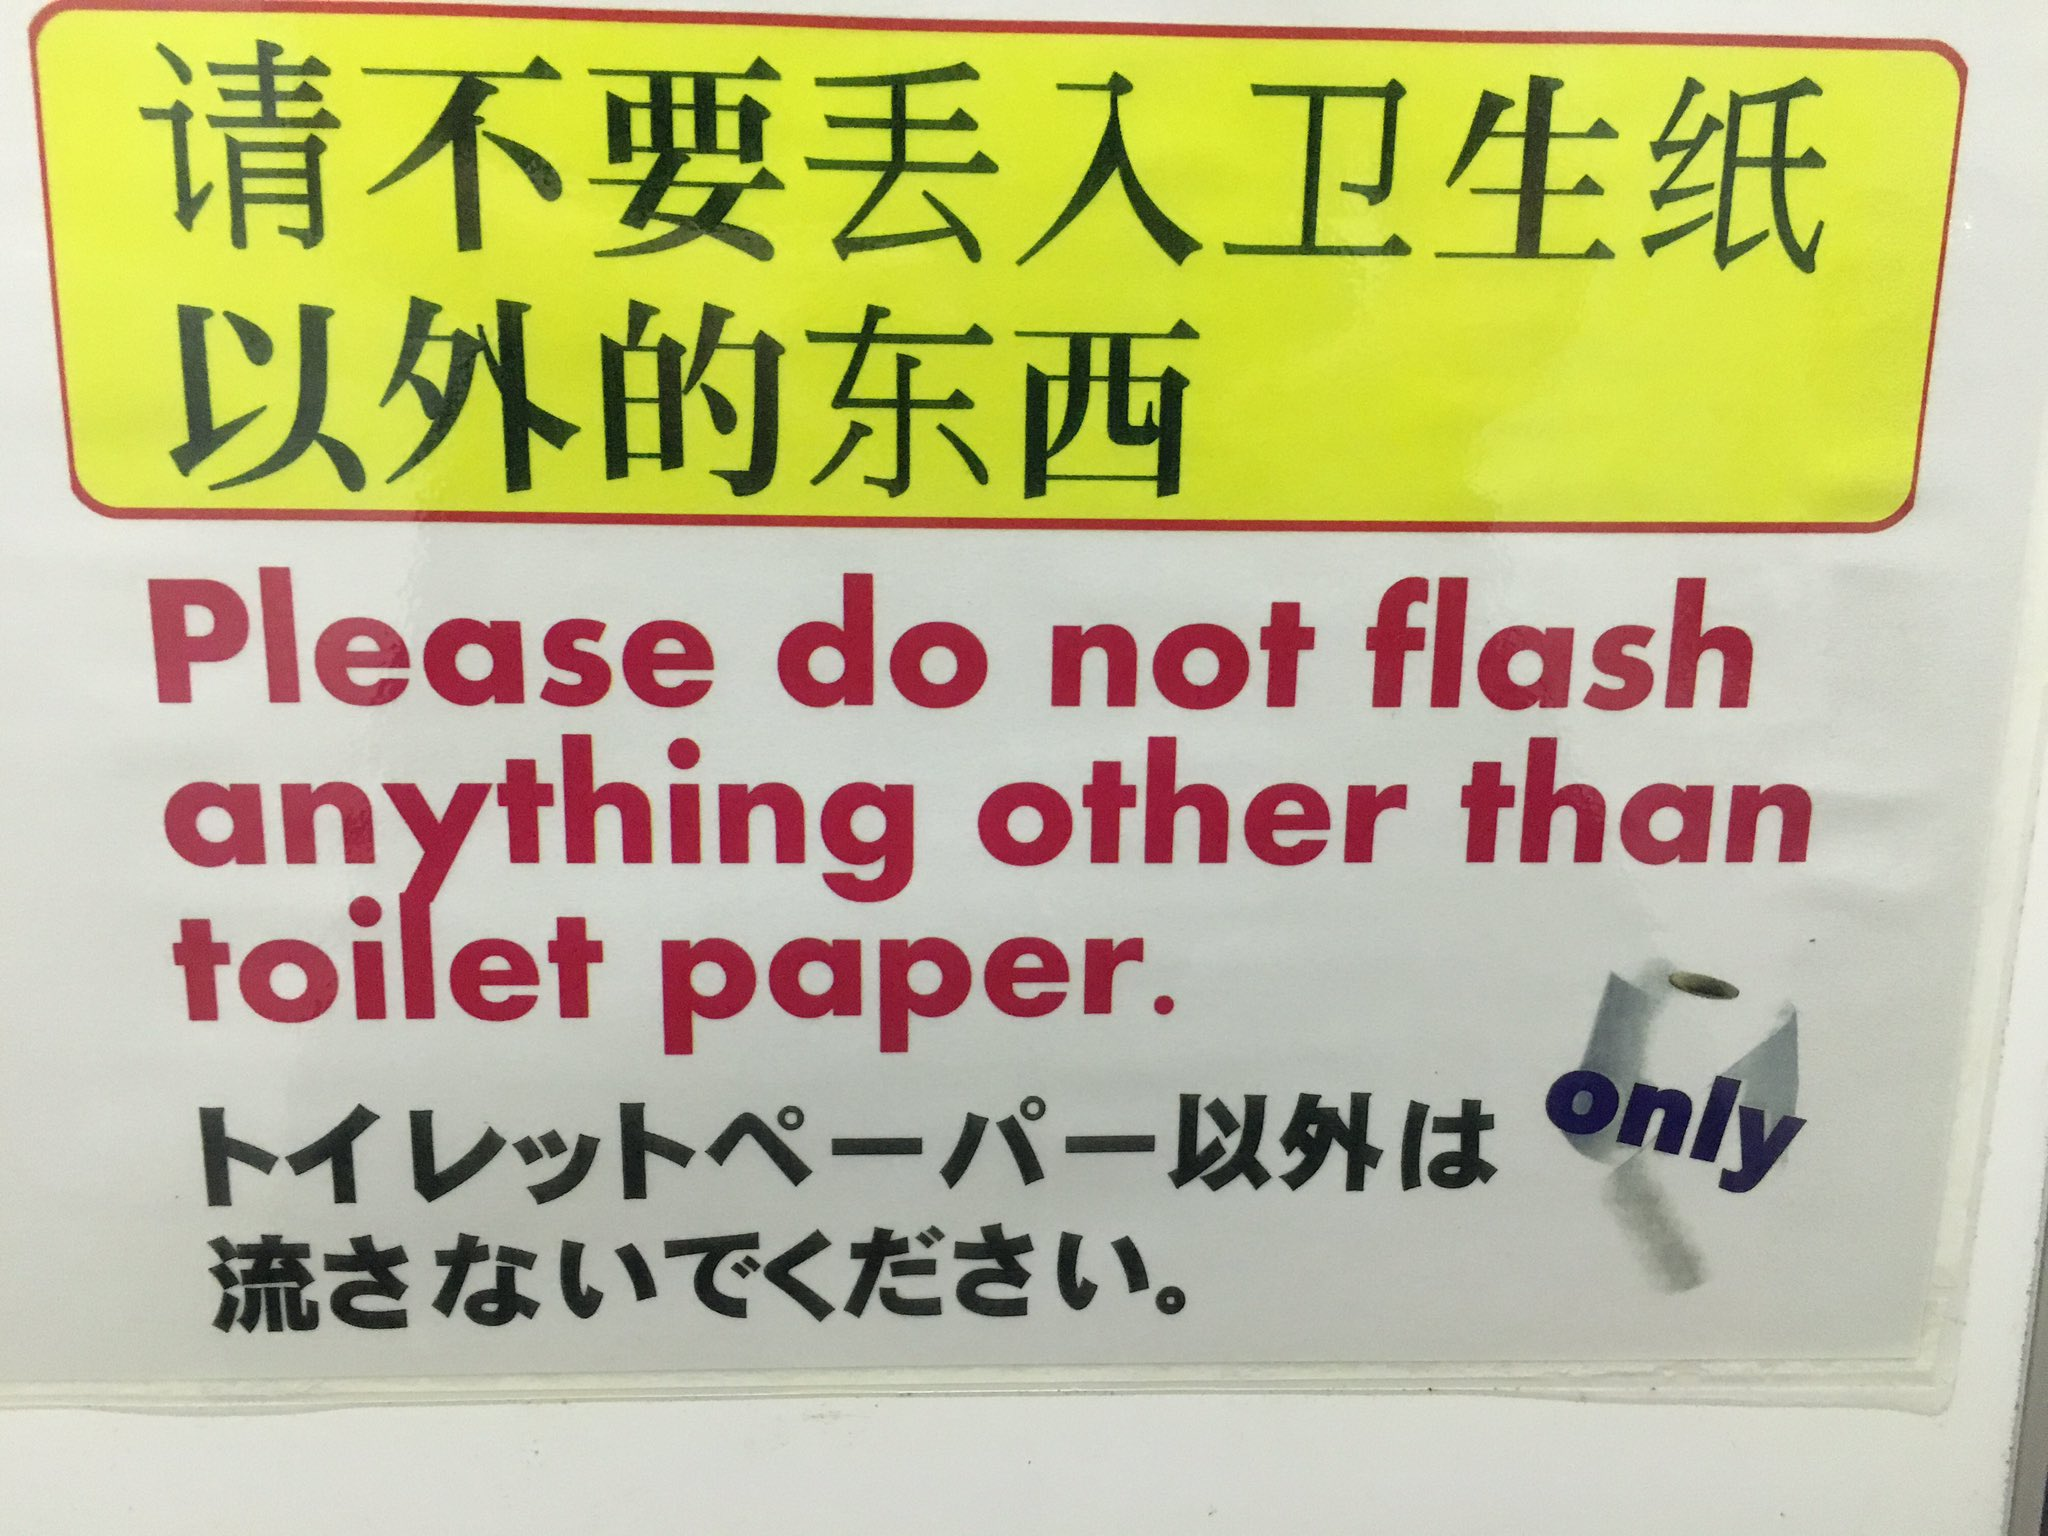 Japan #Nara - to #flash or not to #flashing ? 😜 . . . #engrish #english #spelling #toilet #humor #Japanese